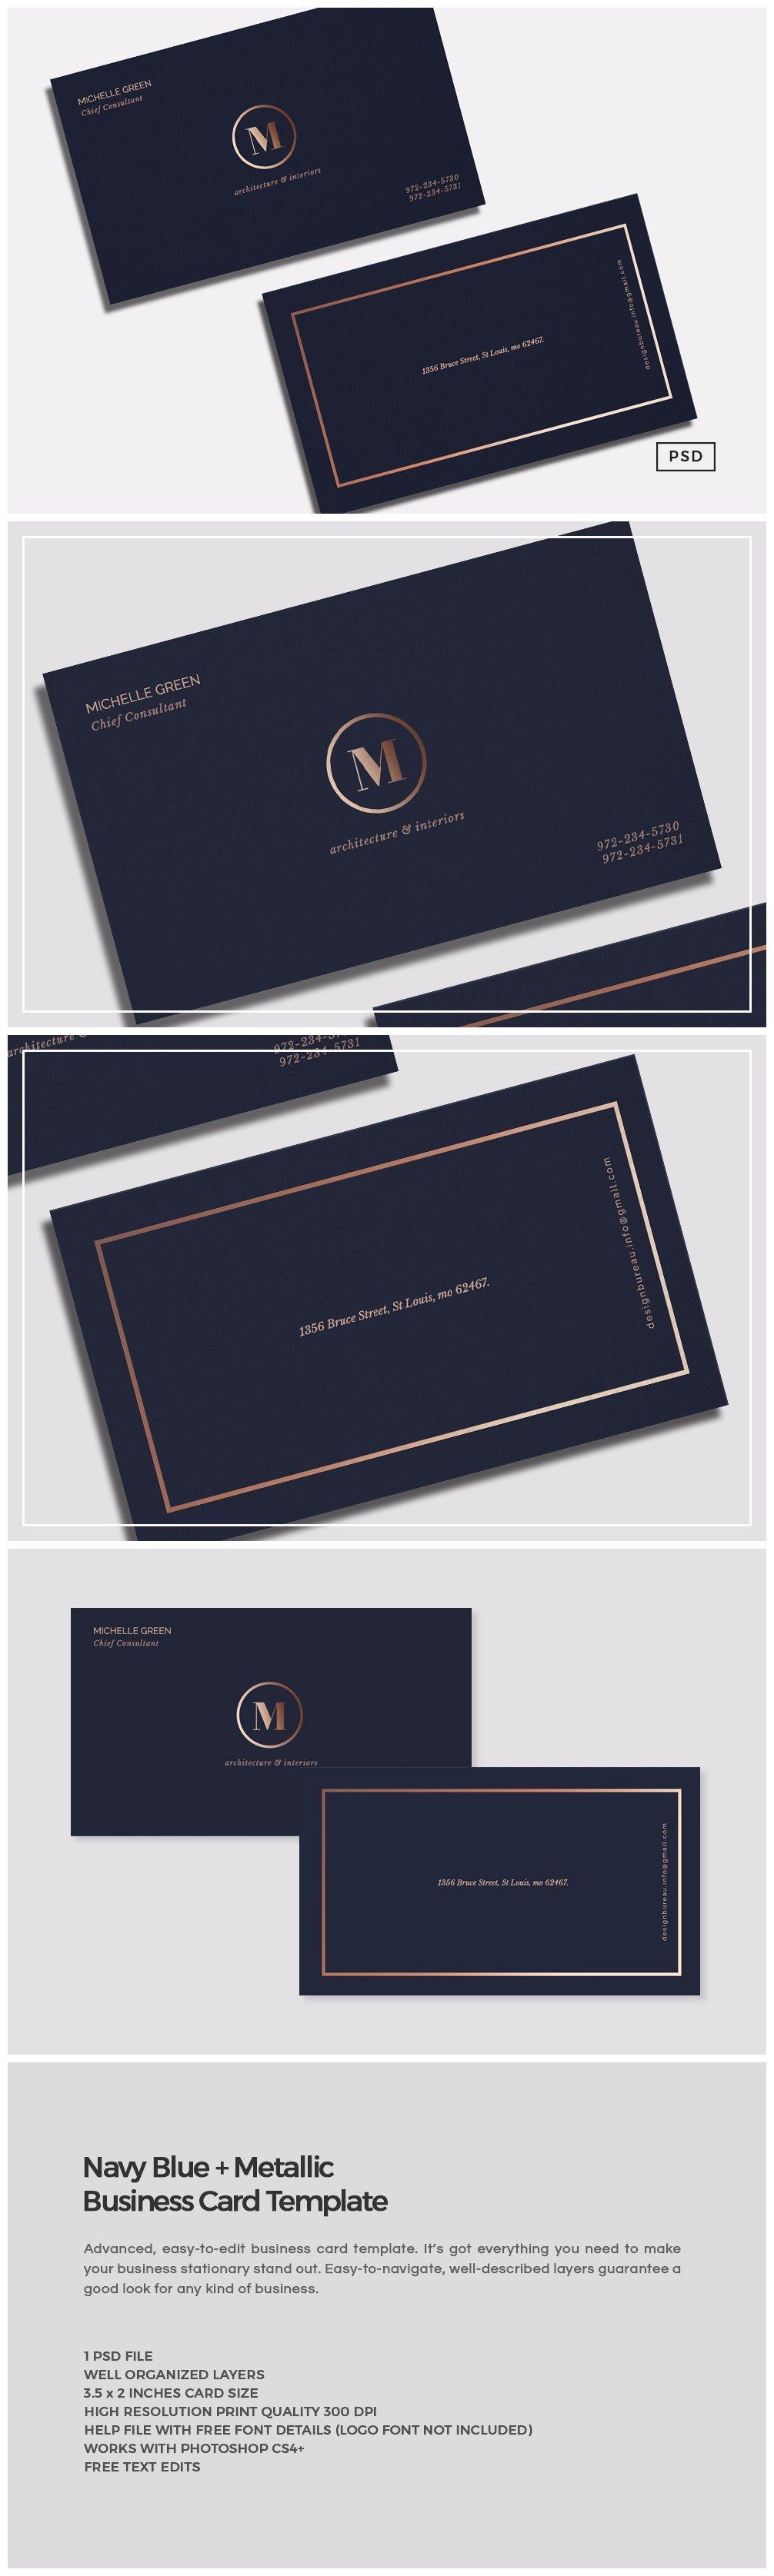 Navy Blue Metallic Business Card In 2020 Business Card Template Professional Business Cards Logo Design Template